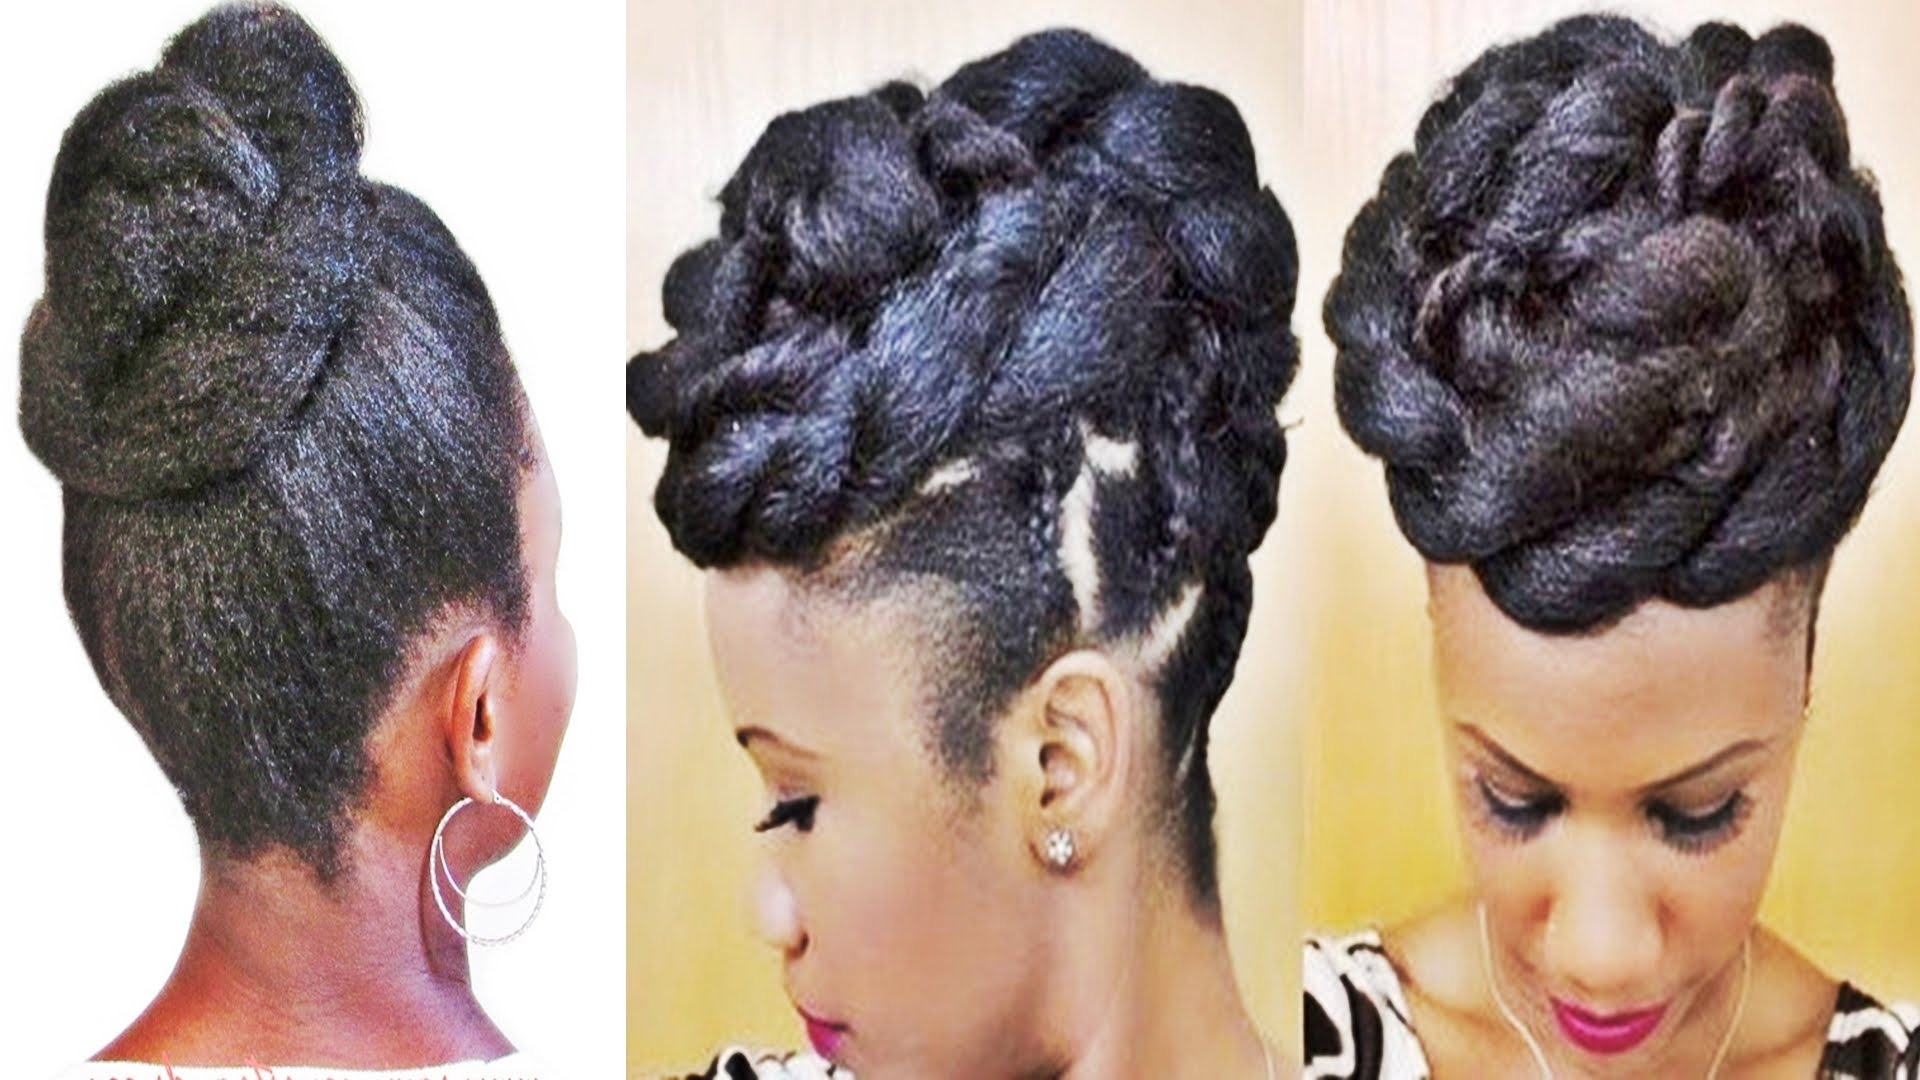 Braids And Twists Updo Hairstyle For Black Women – Youtube With Regard To Black Braids Updo Hairstyles (View 8 of 15)